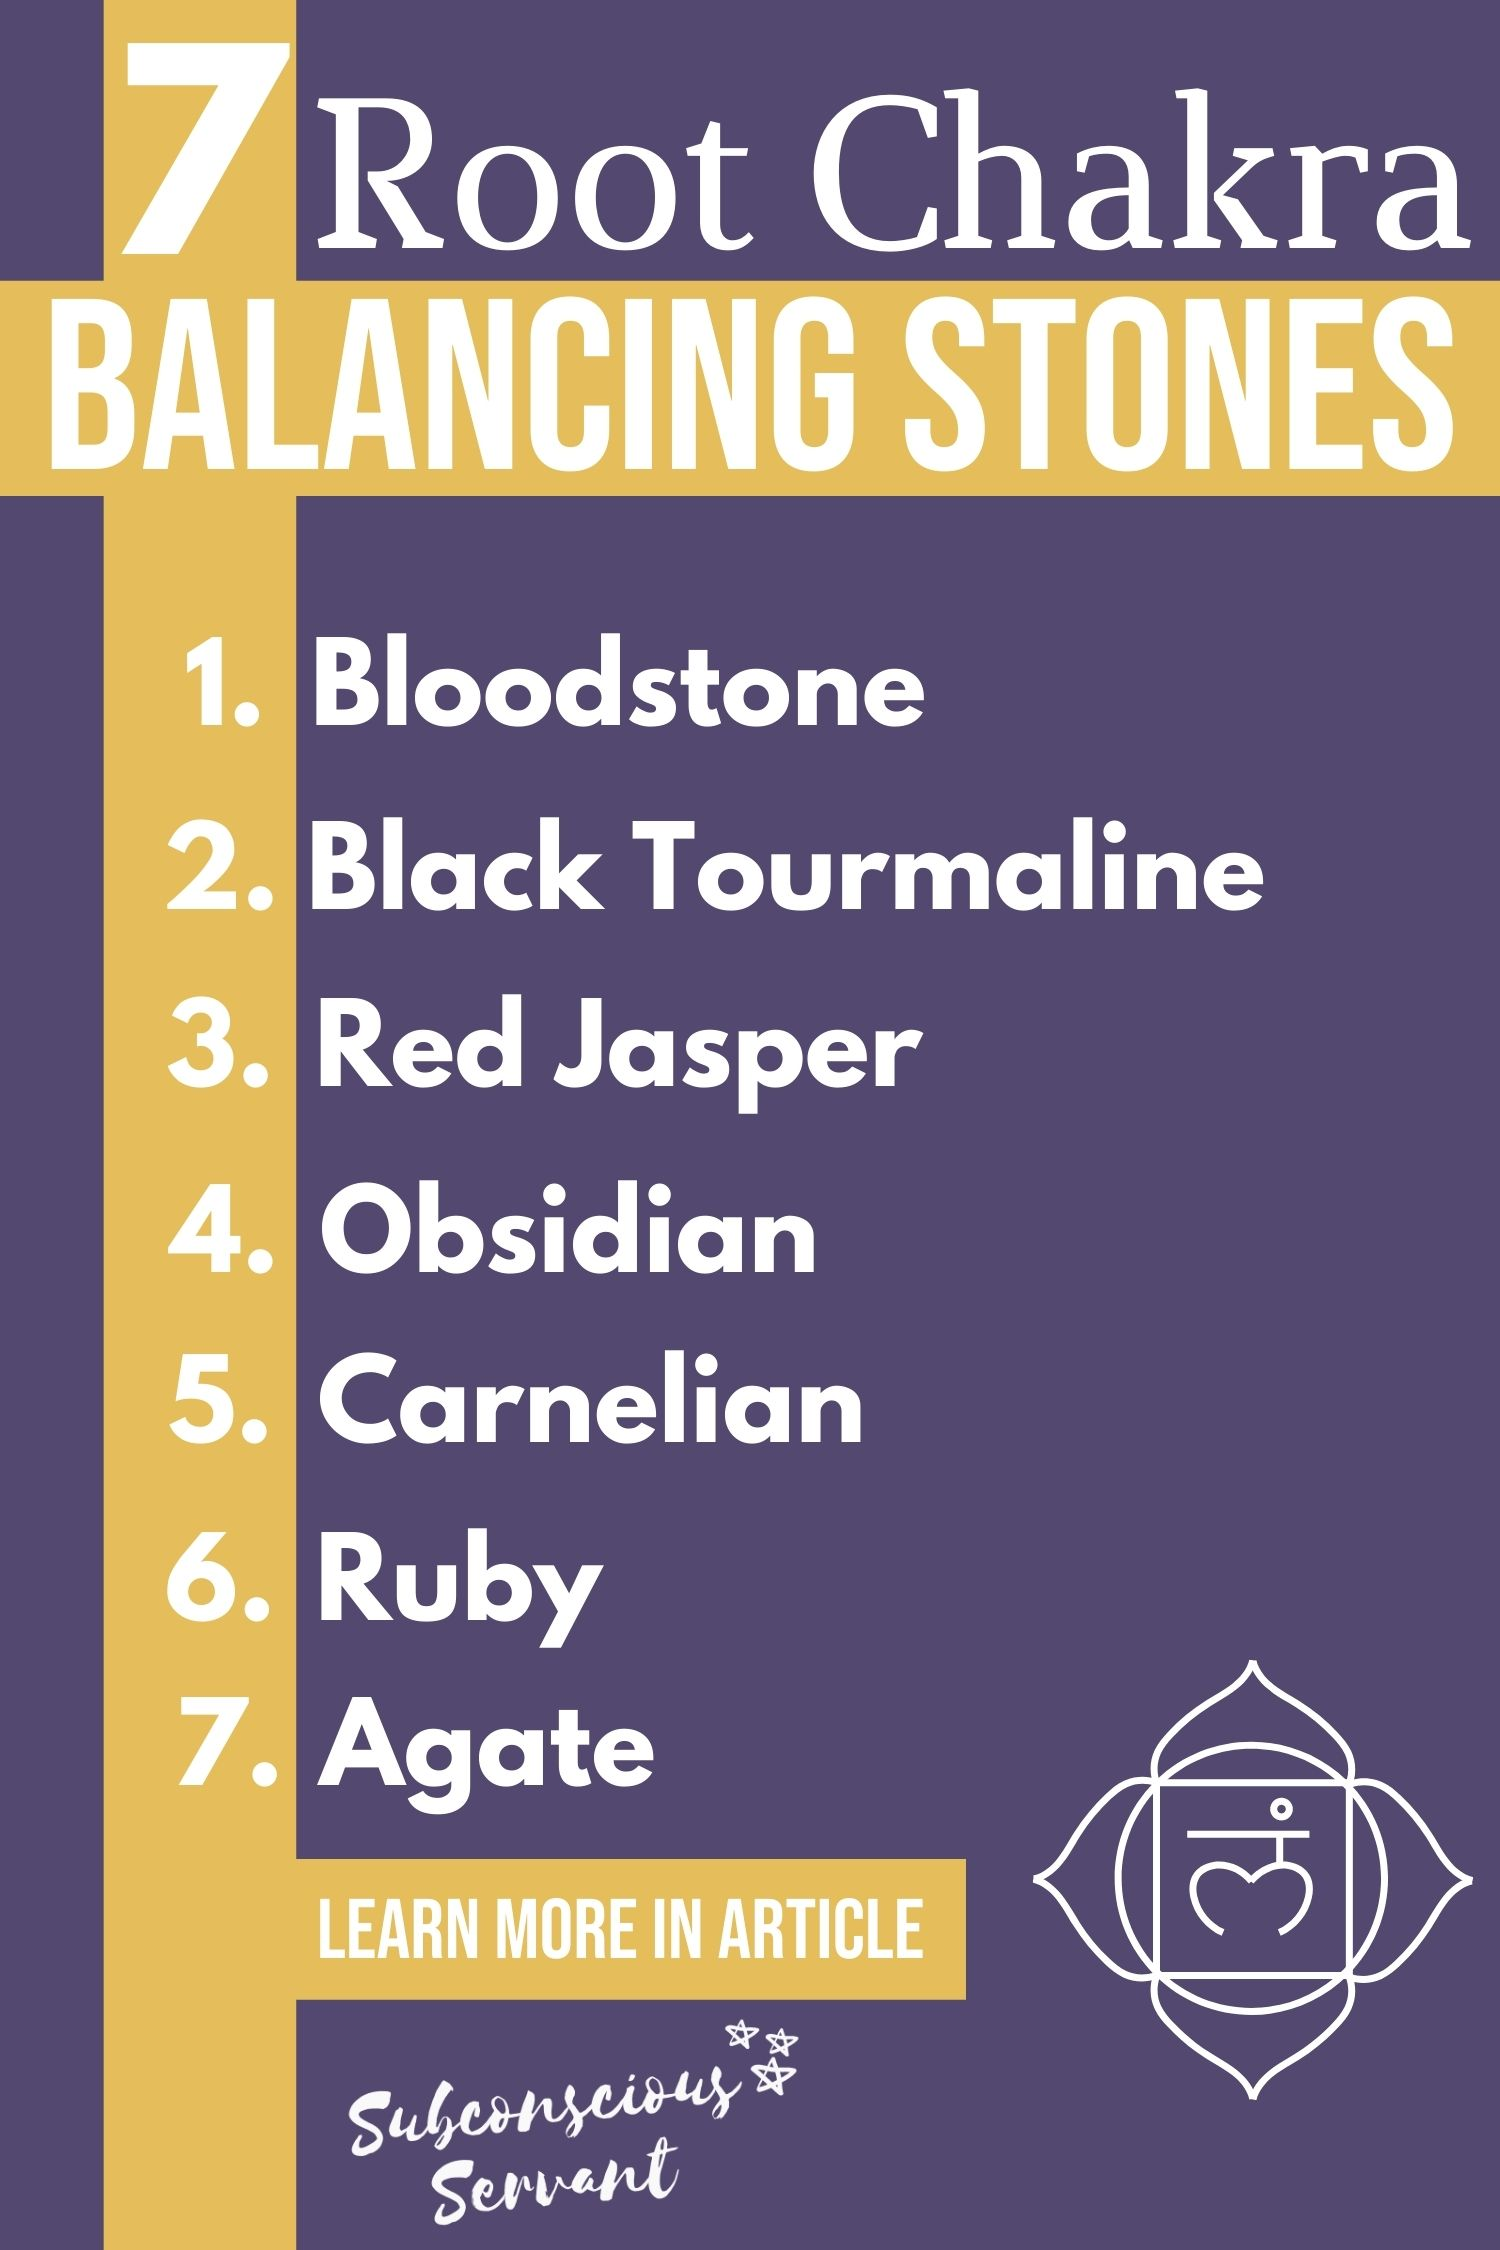 7 Most Powerful Stones For A Well Balanced Root Chakra